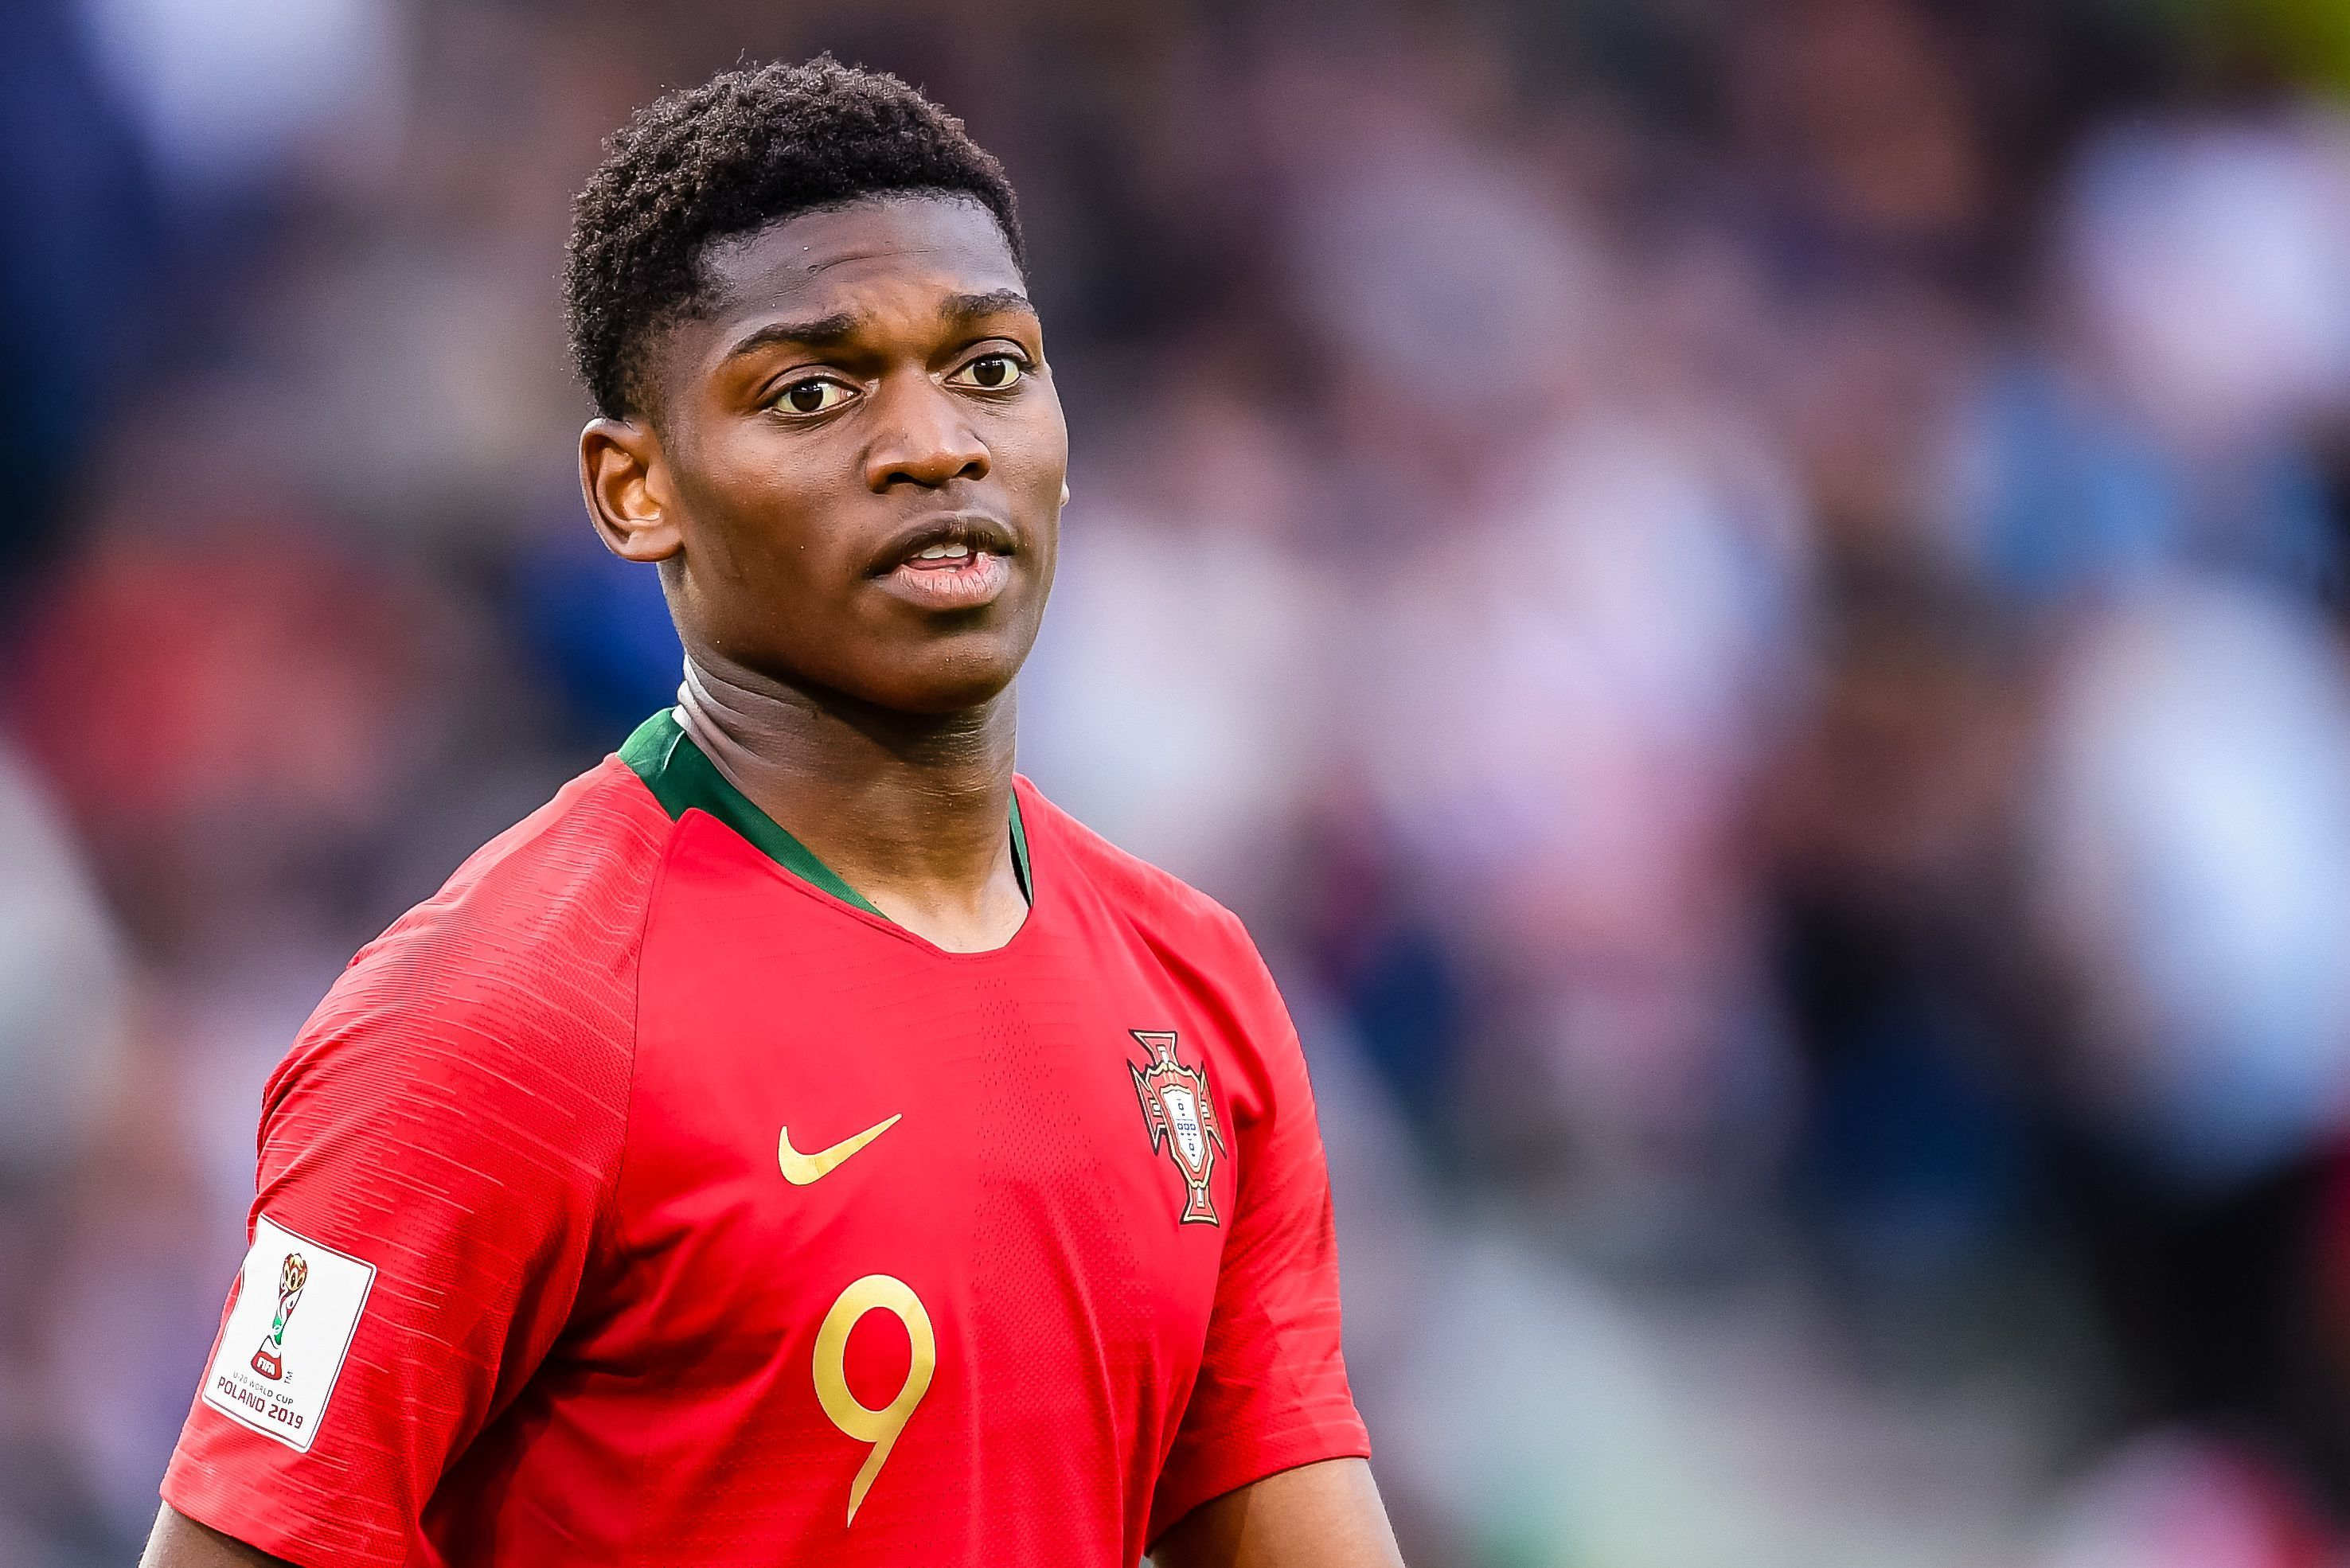 AC Milan, Rafael Leao Agree to 5-Year Contract Reportedly Worth €30M   Bleacher Report   Latest News, Videos and Highlights